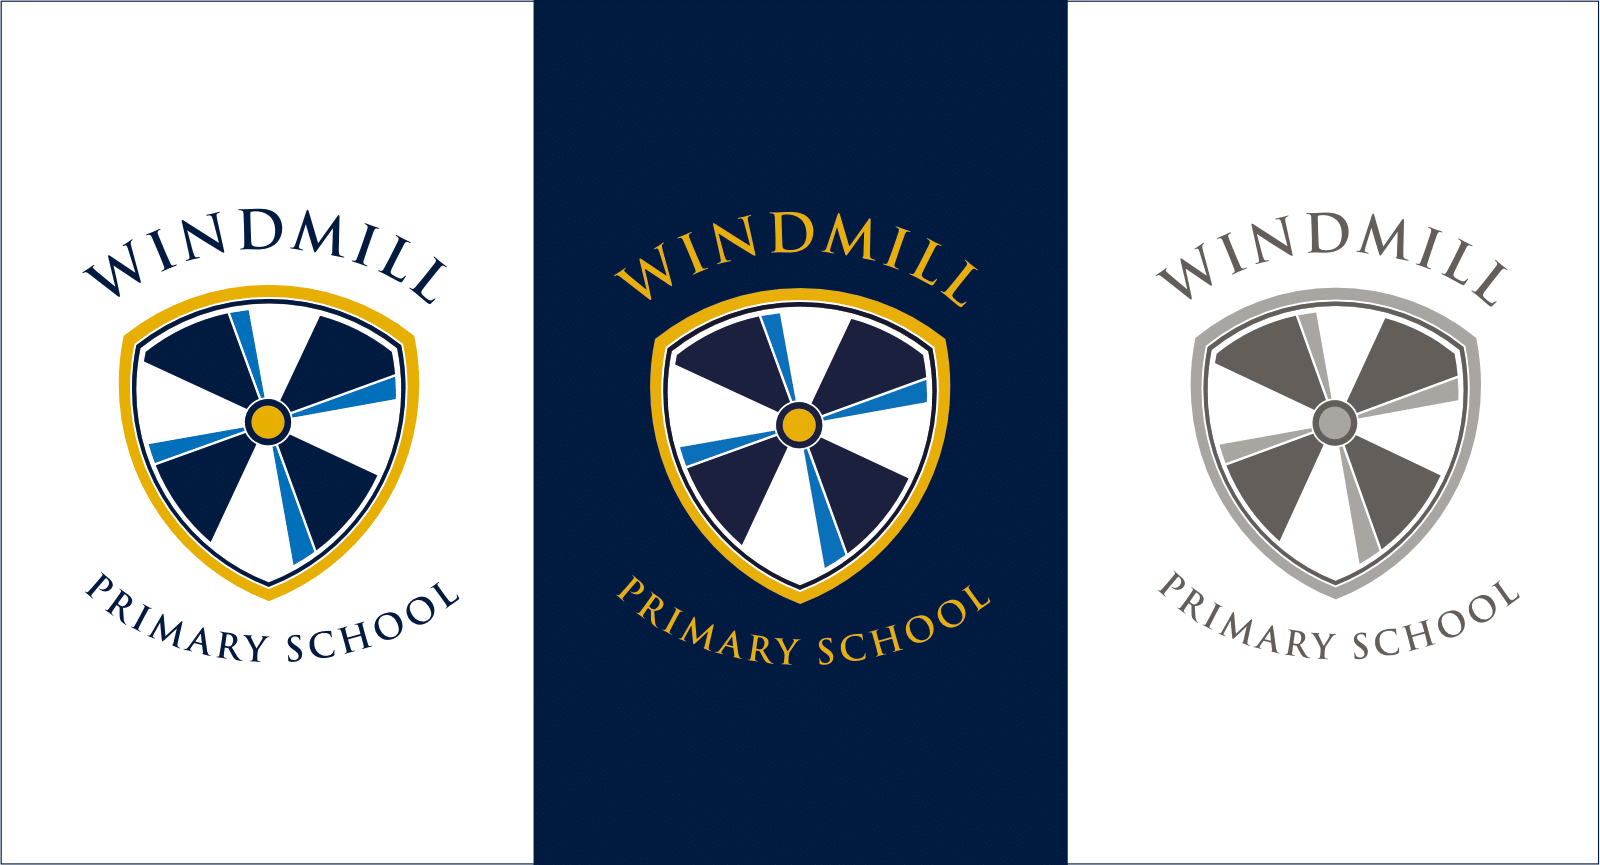 Windmill logo 3 panel